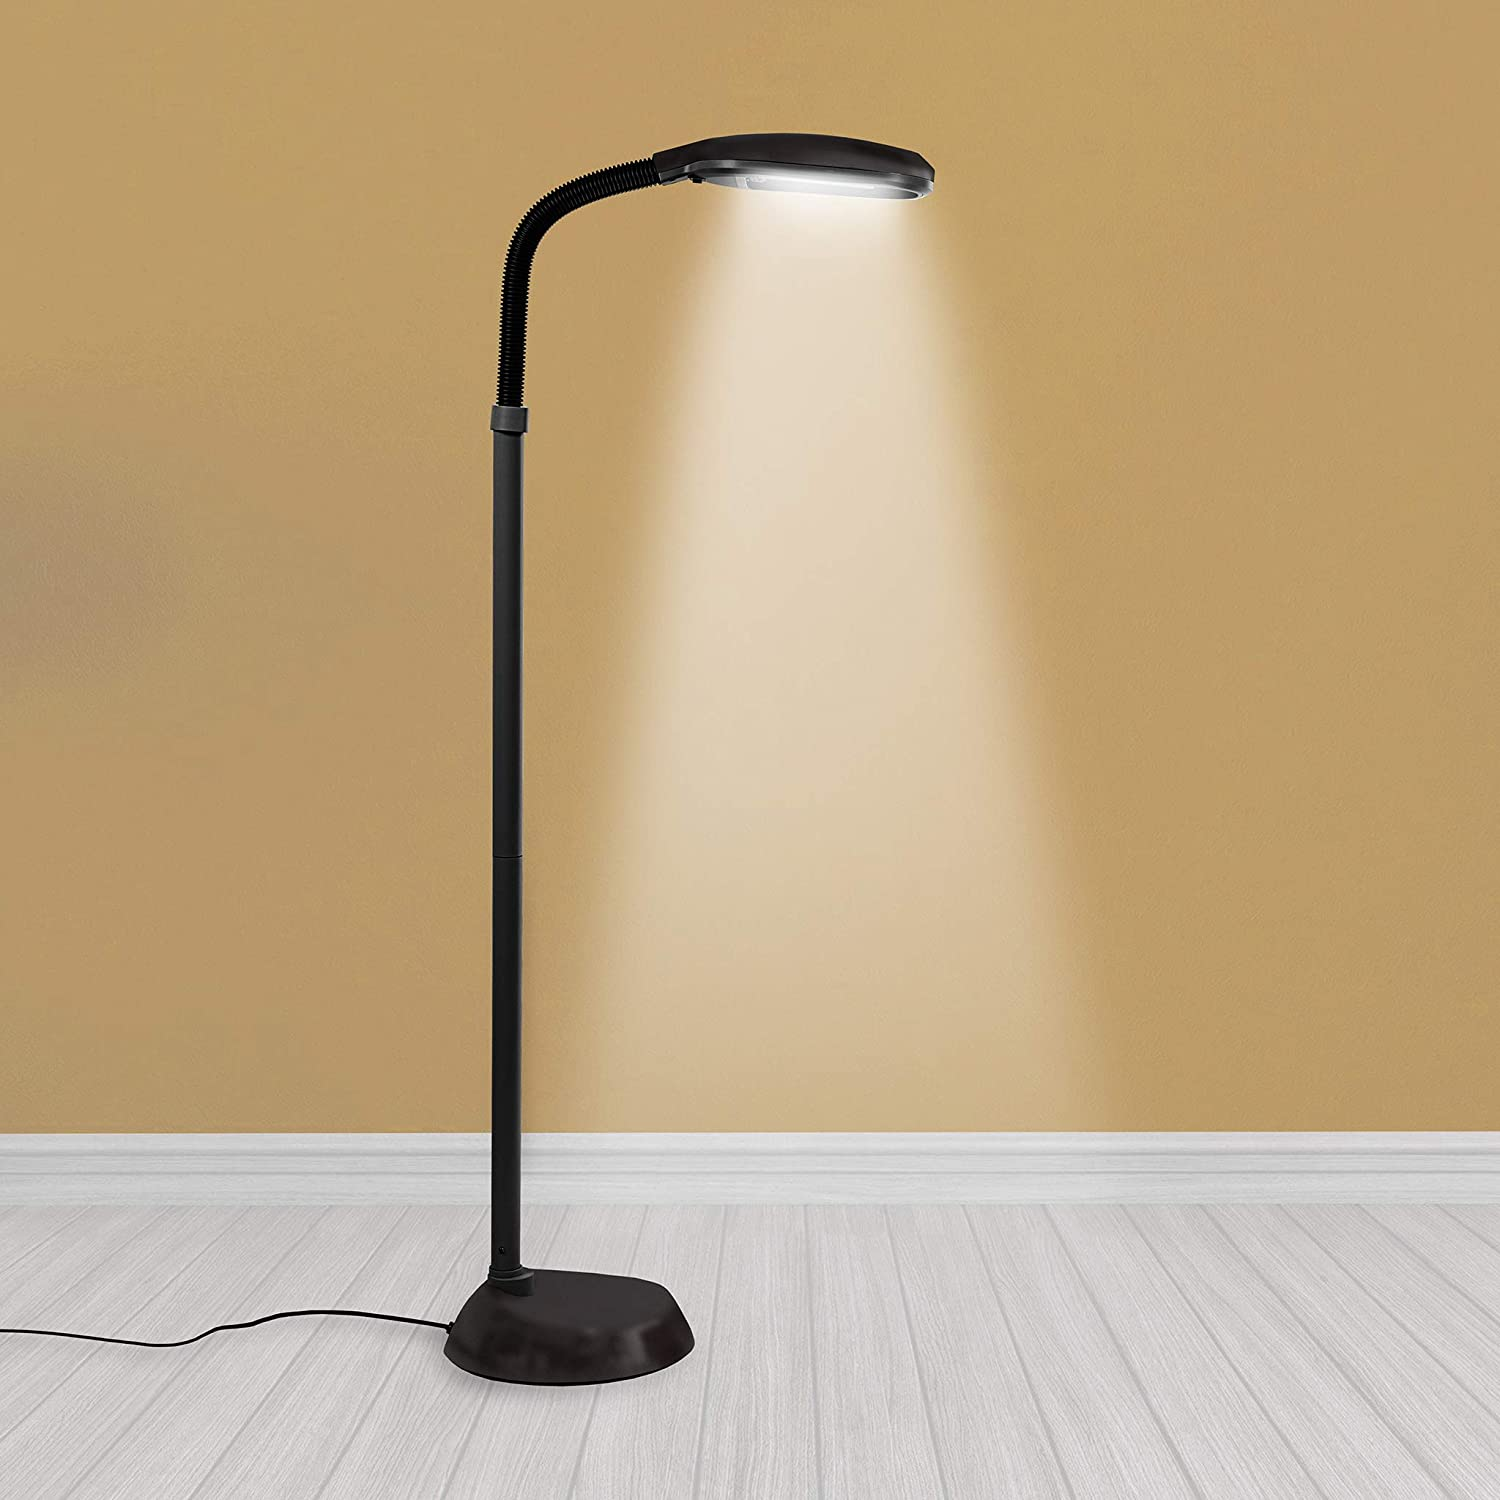 Lamp with natural light